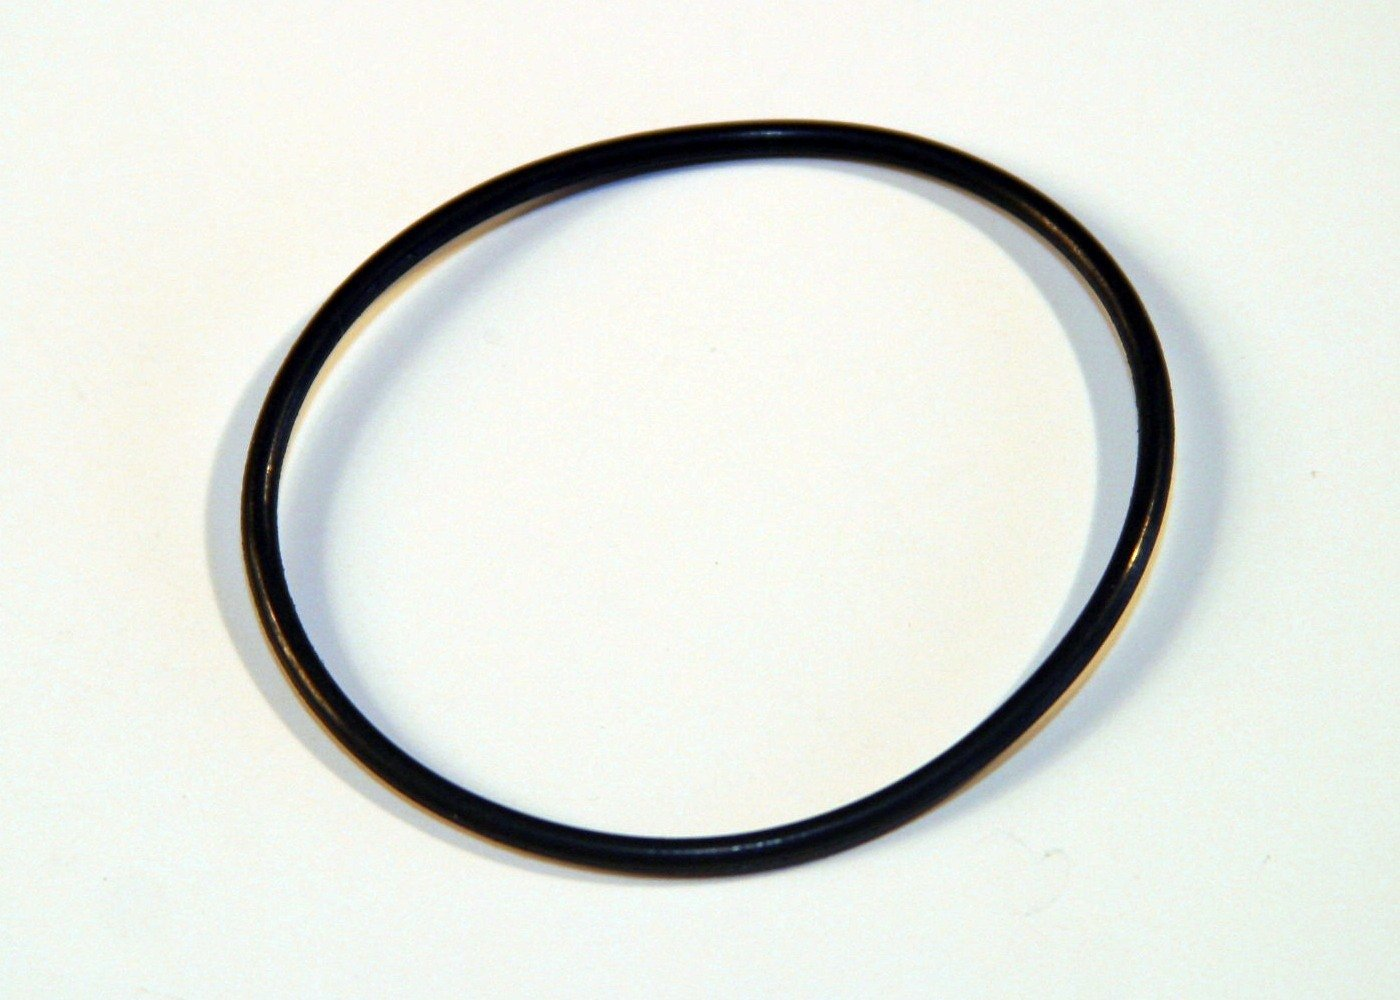 Pro-Ject Turntable Replacement Motor Suspension Belt